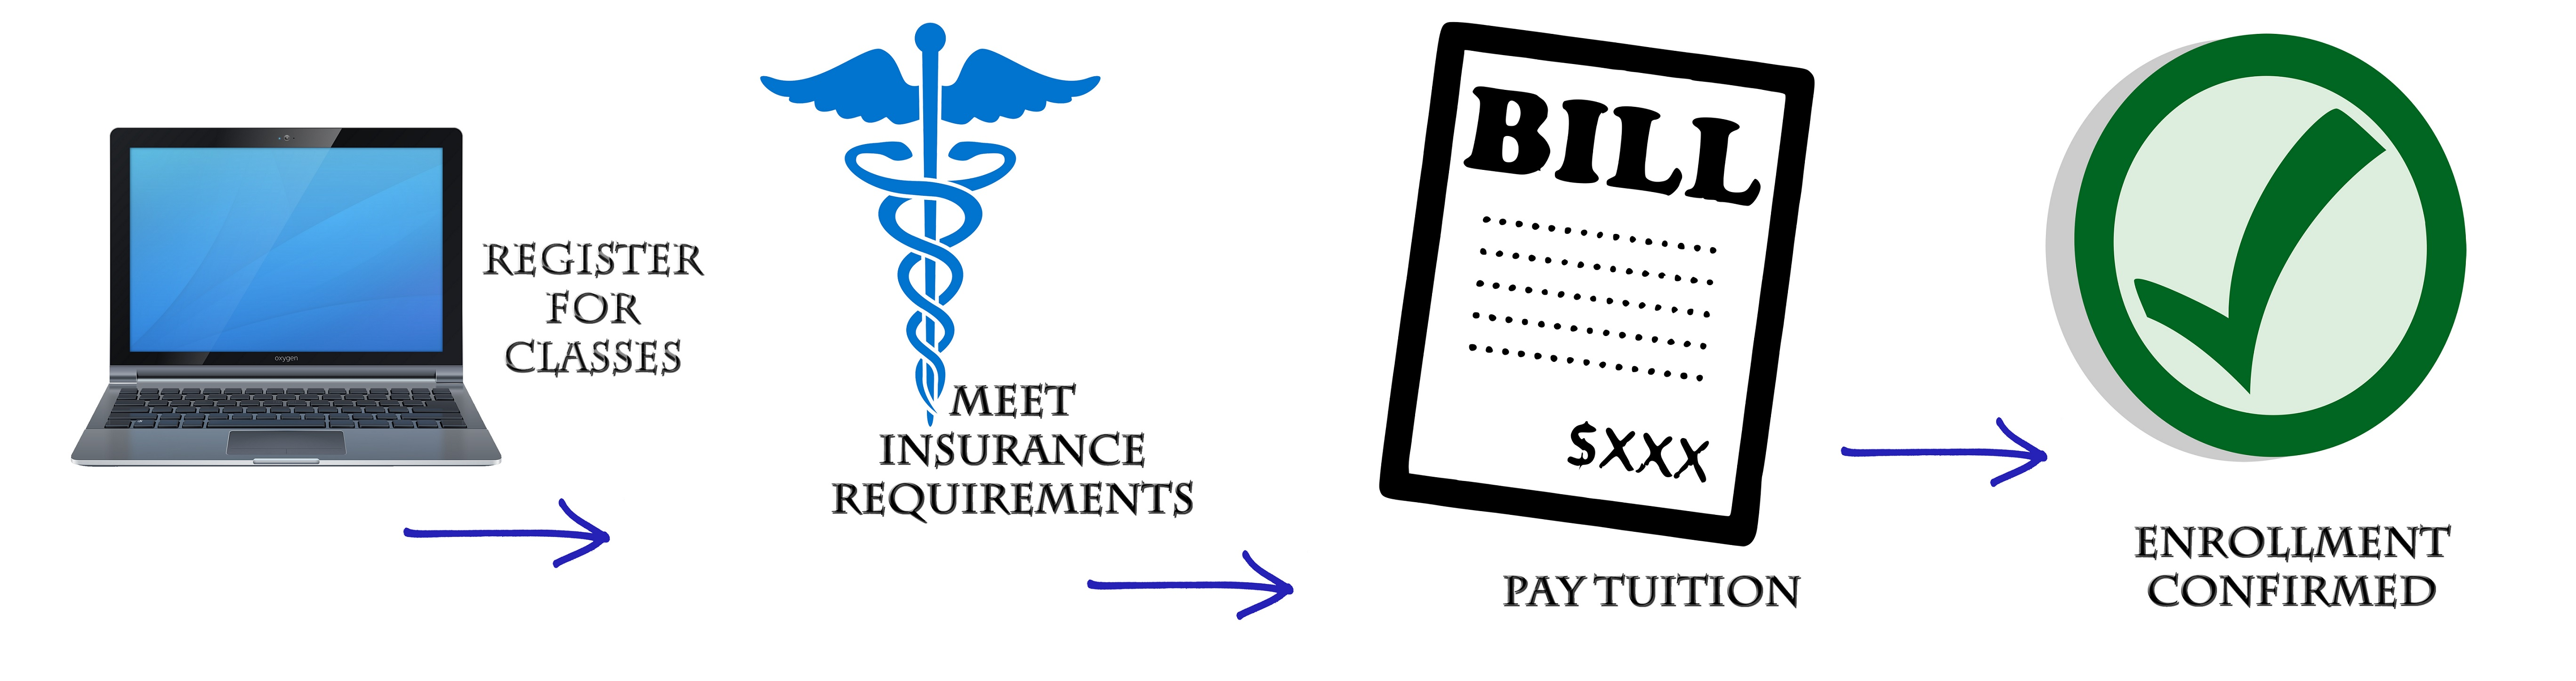 Insurance and enrollment flowchart